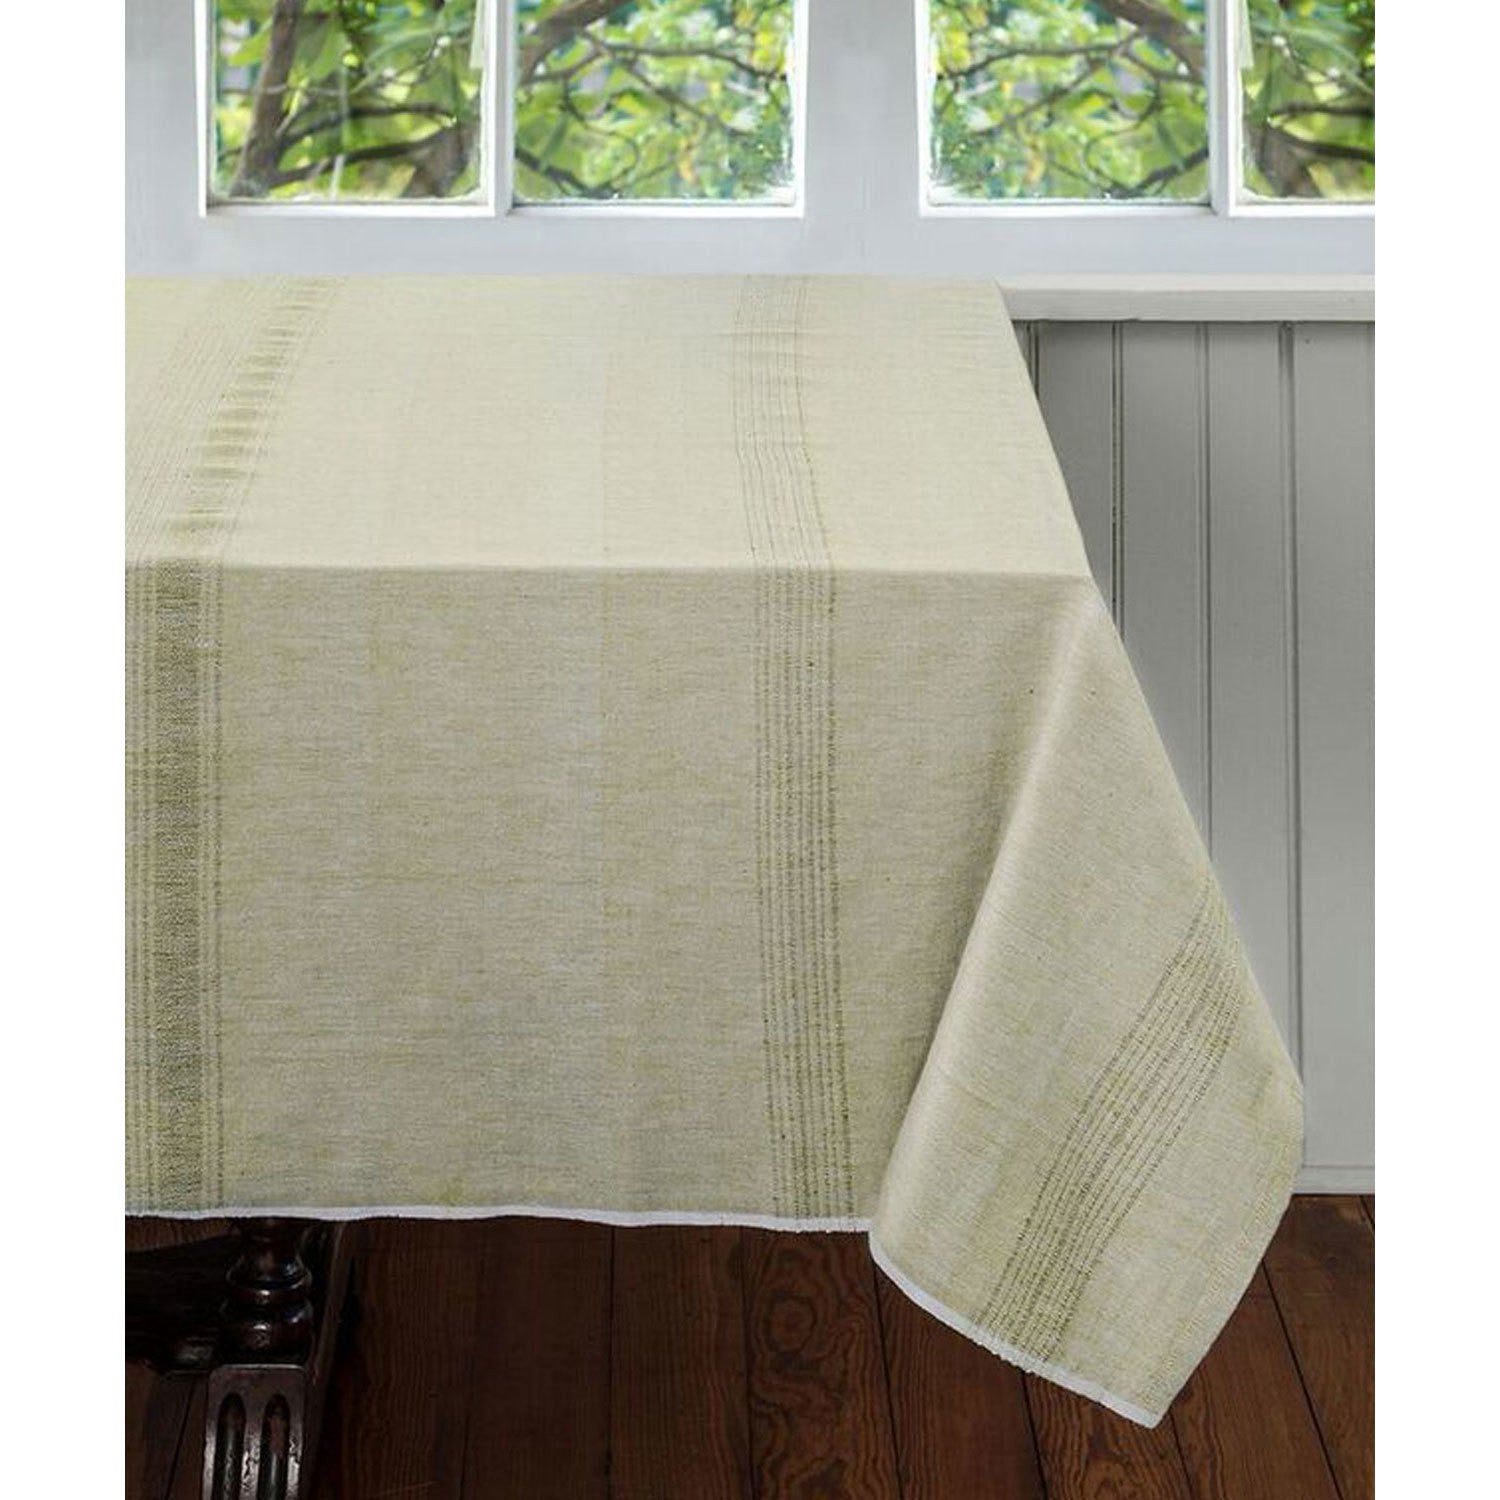 Pale Leaf Cotton Tablecloth 90 by 60